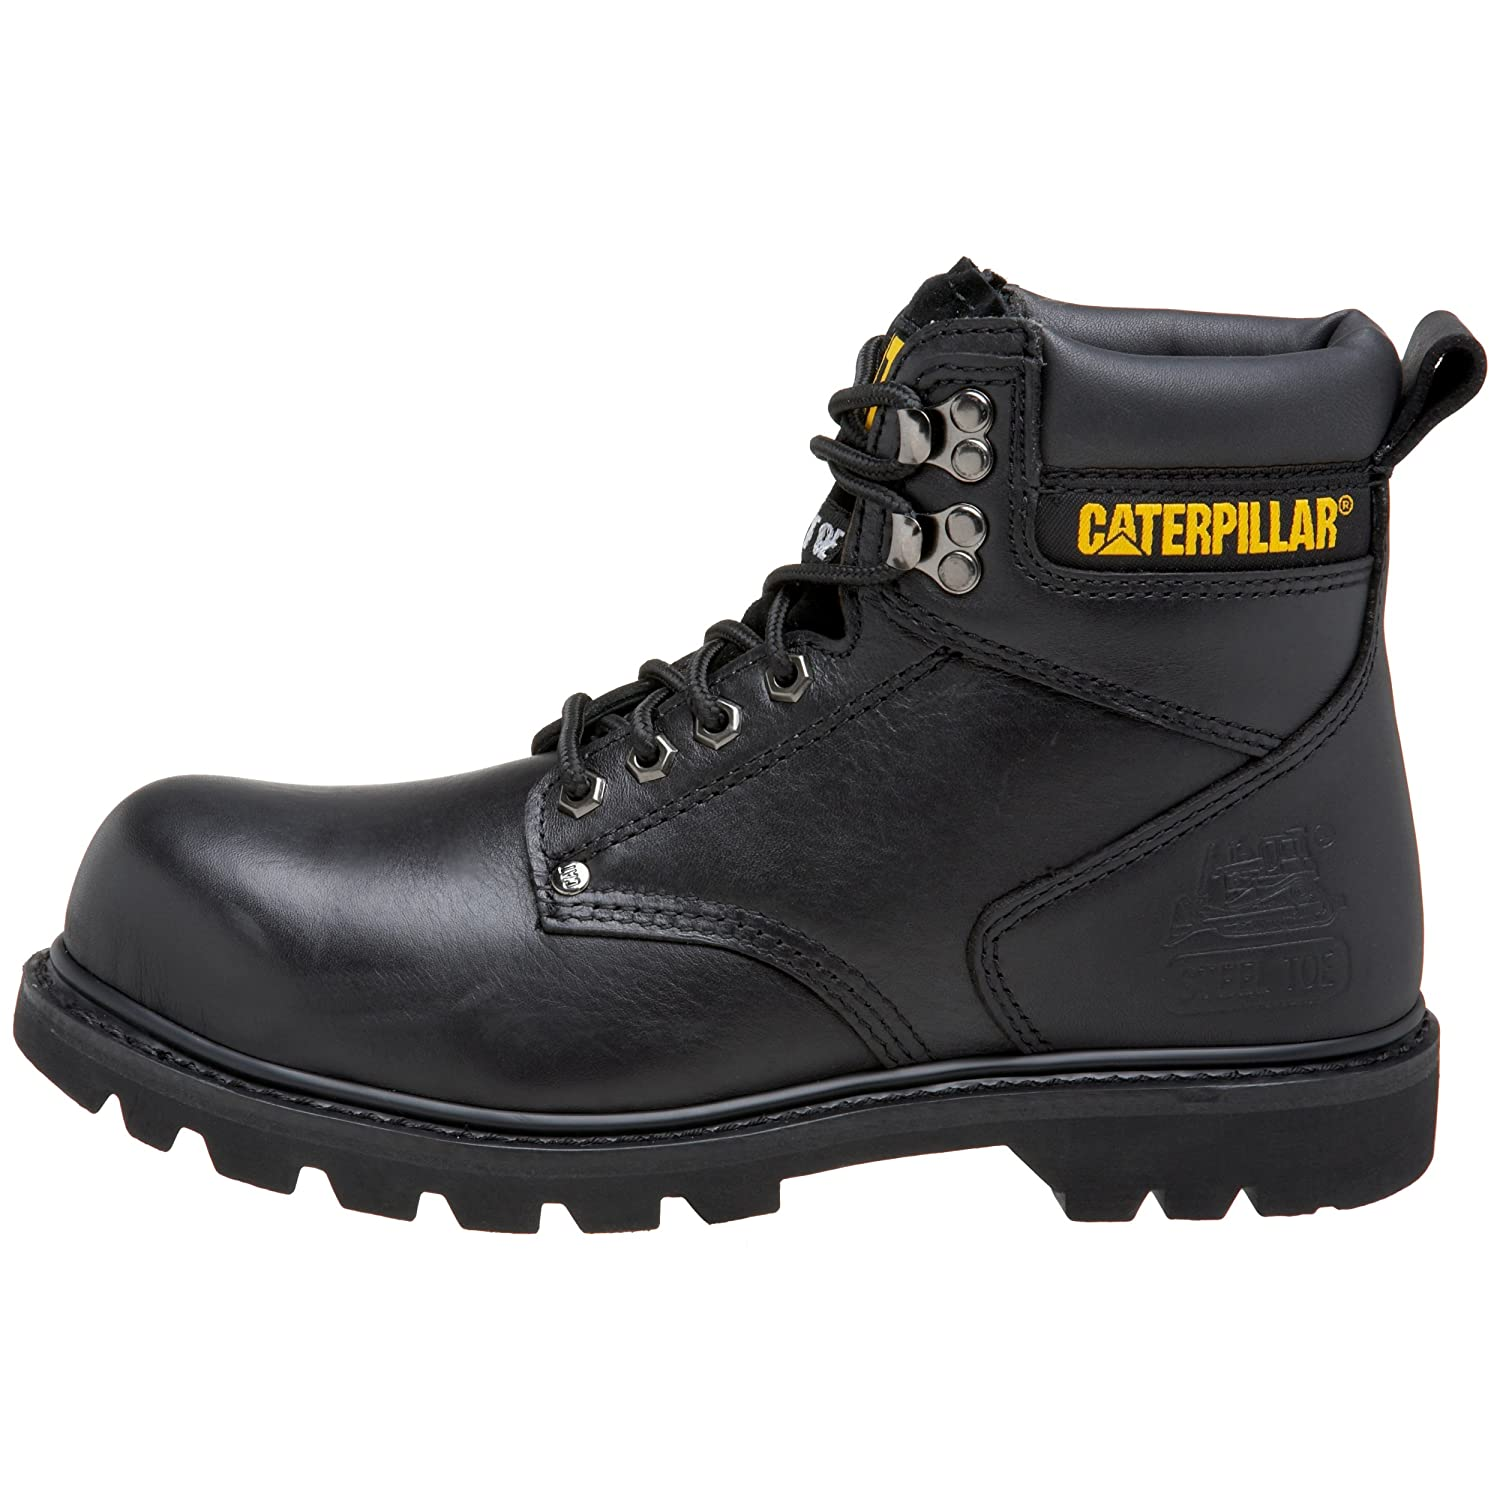 caterpillar shoes online pakistani movies actor